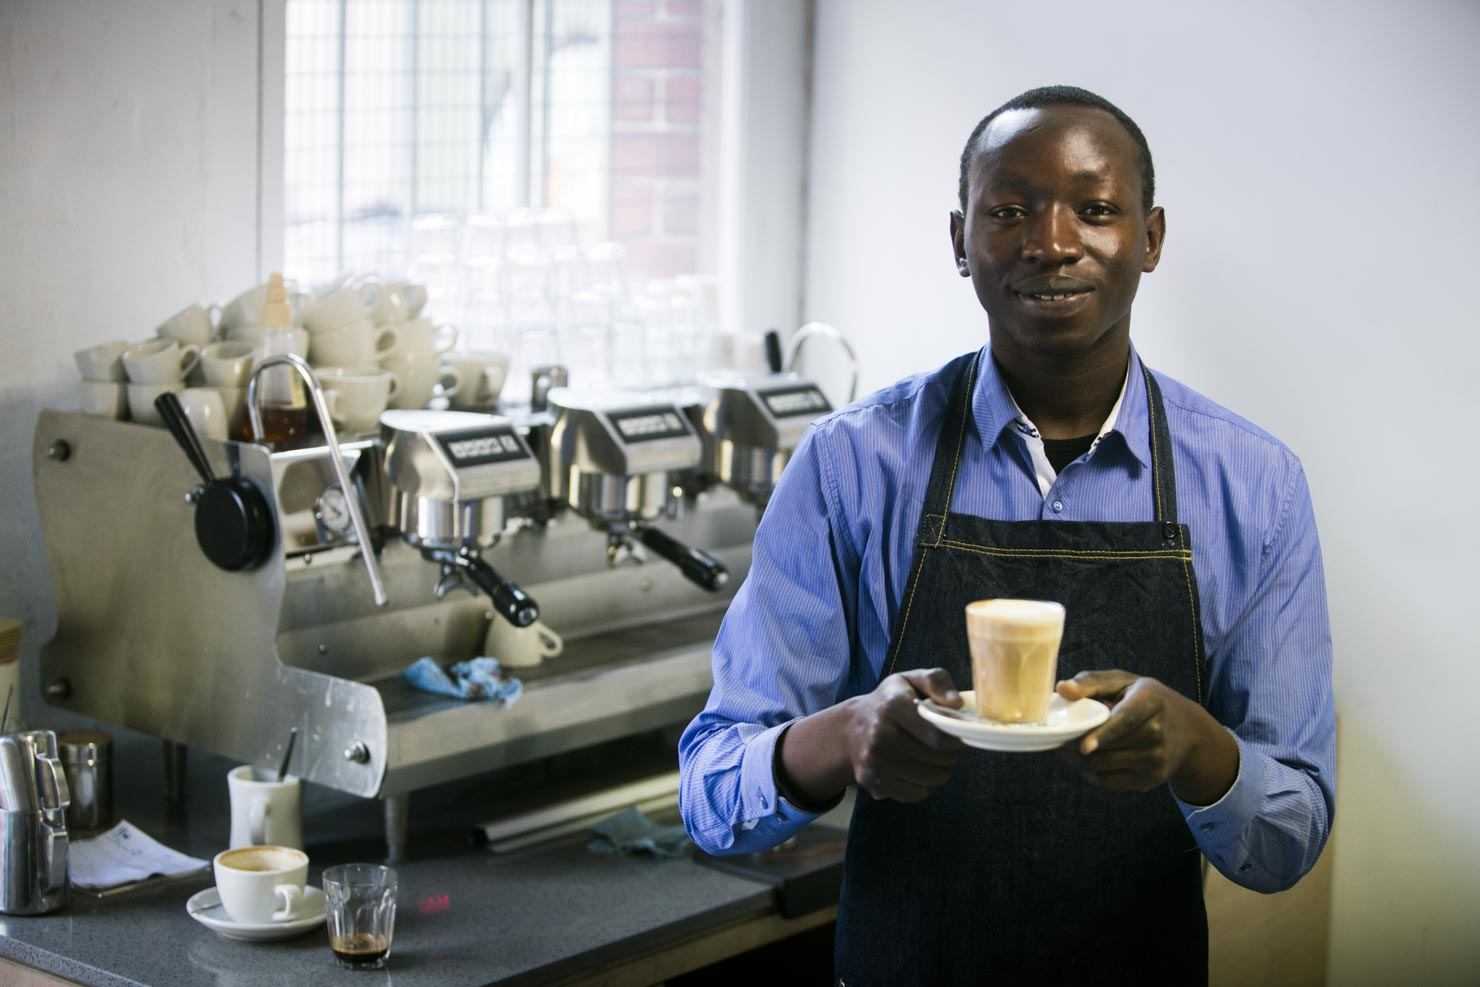 A Sudanese Barista making coffee at a cafe. Client: Brotherhood of St Laurence